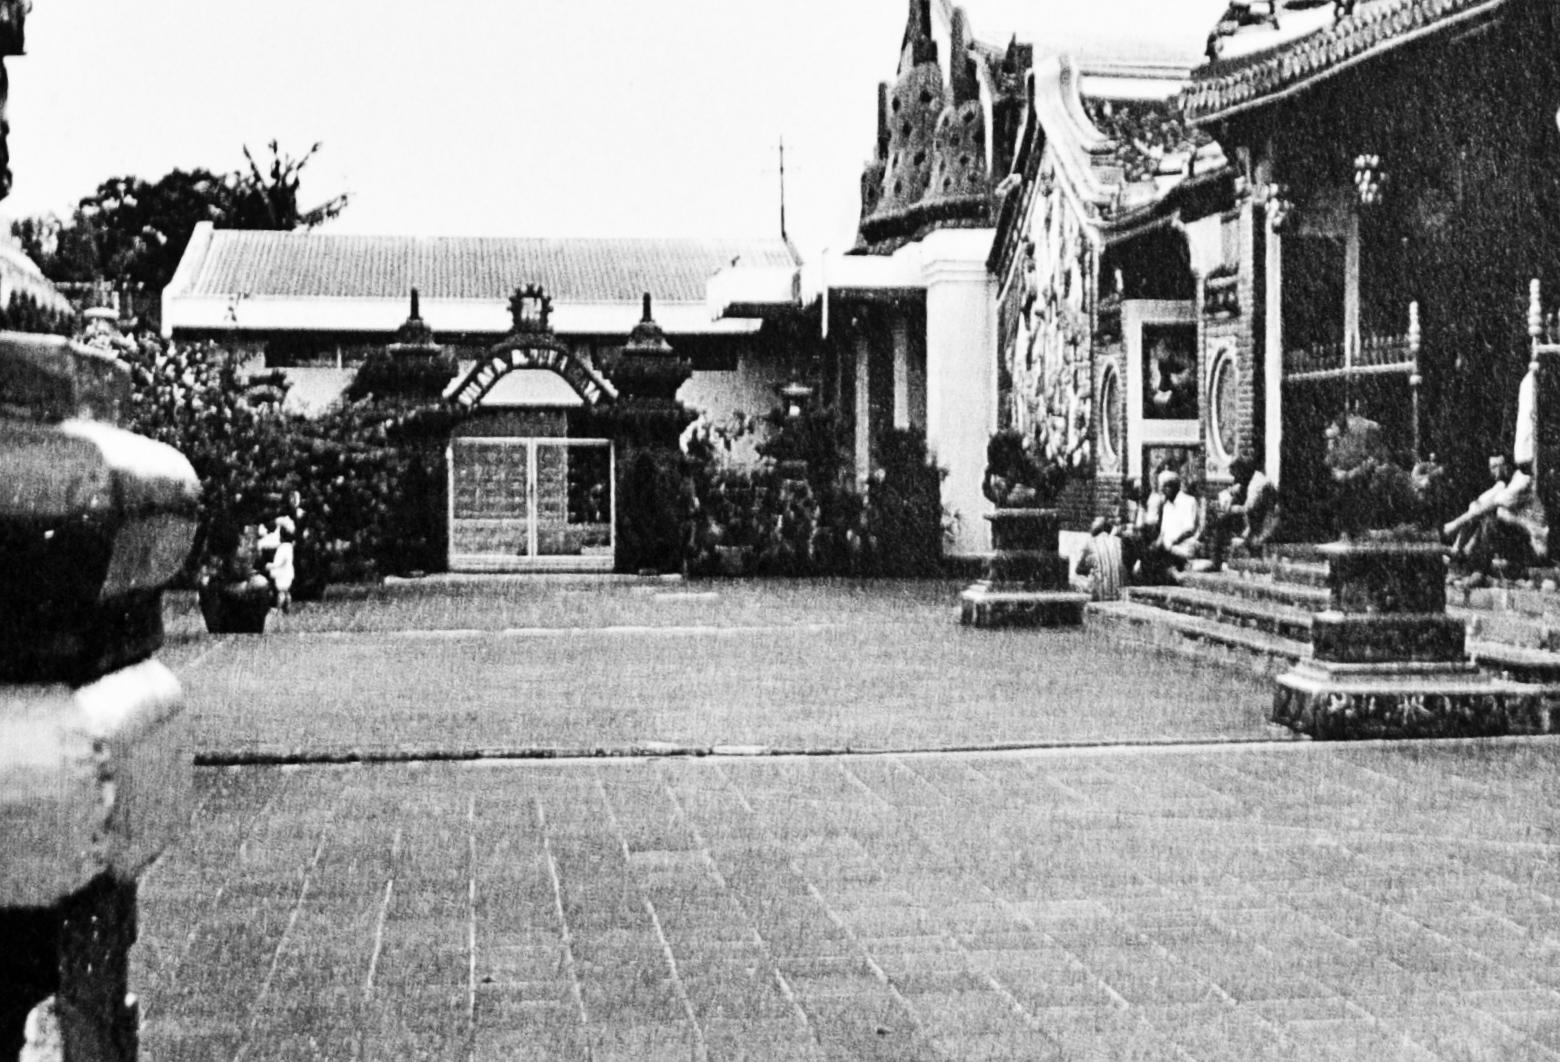 Chinese Temple in Indonesie training area